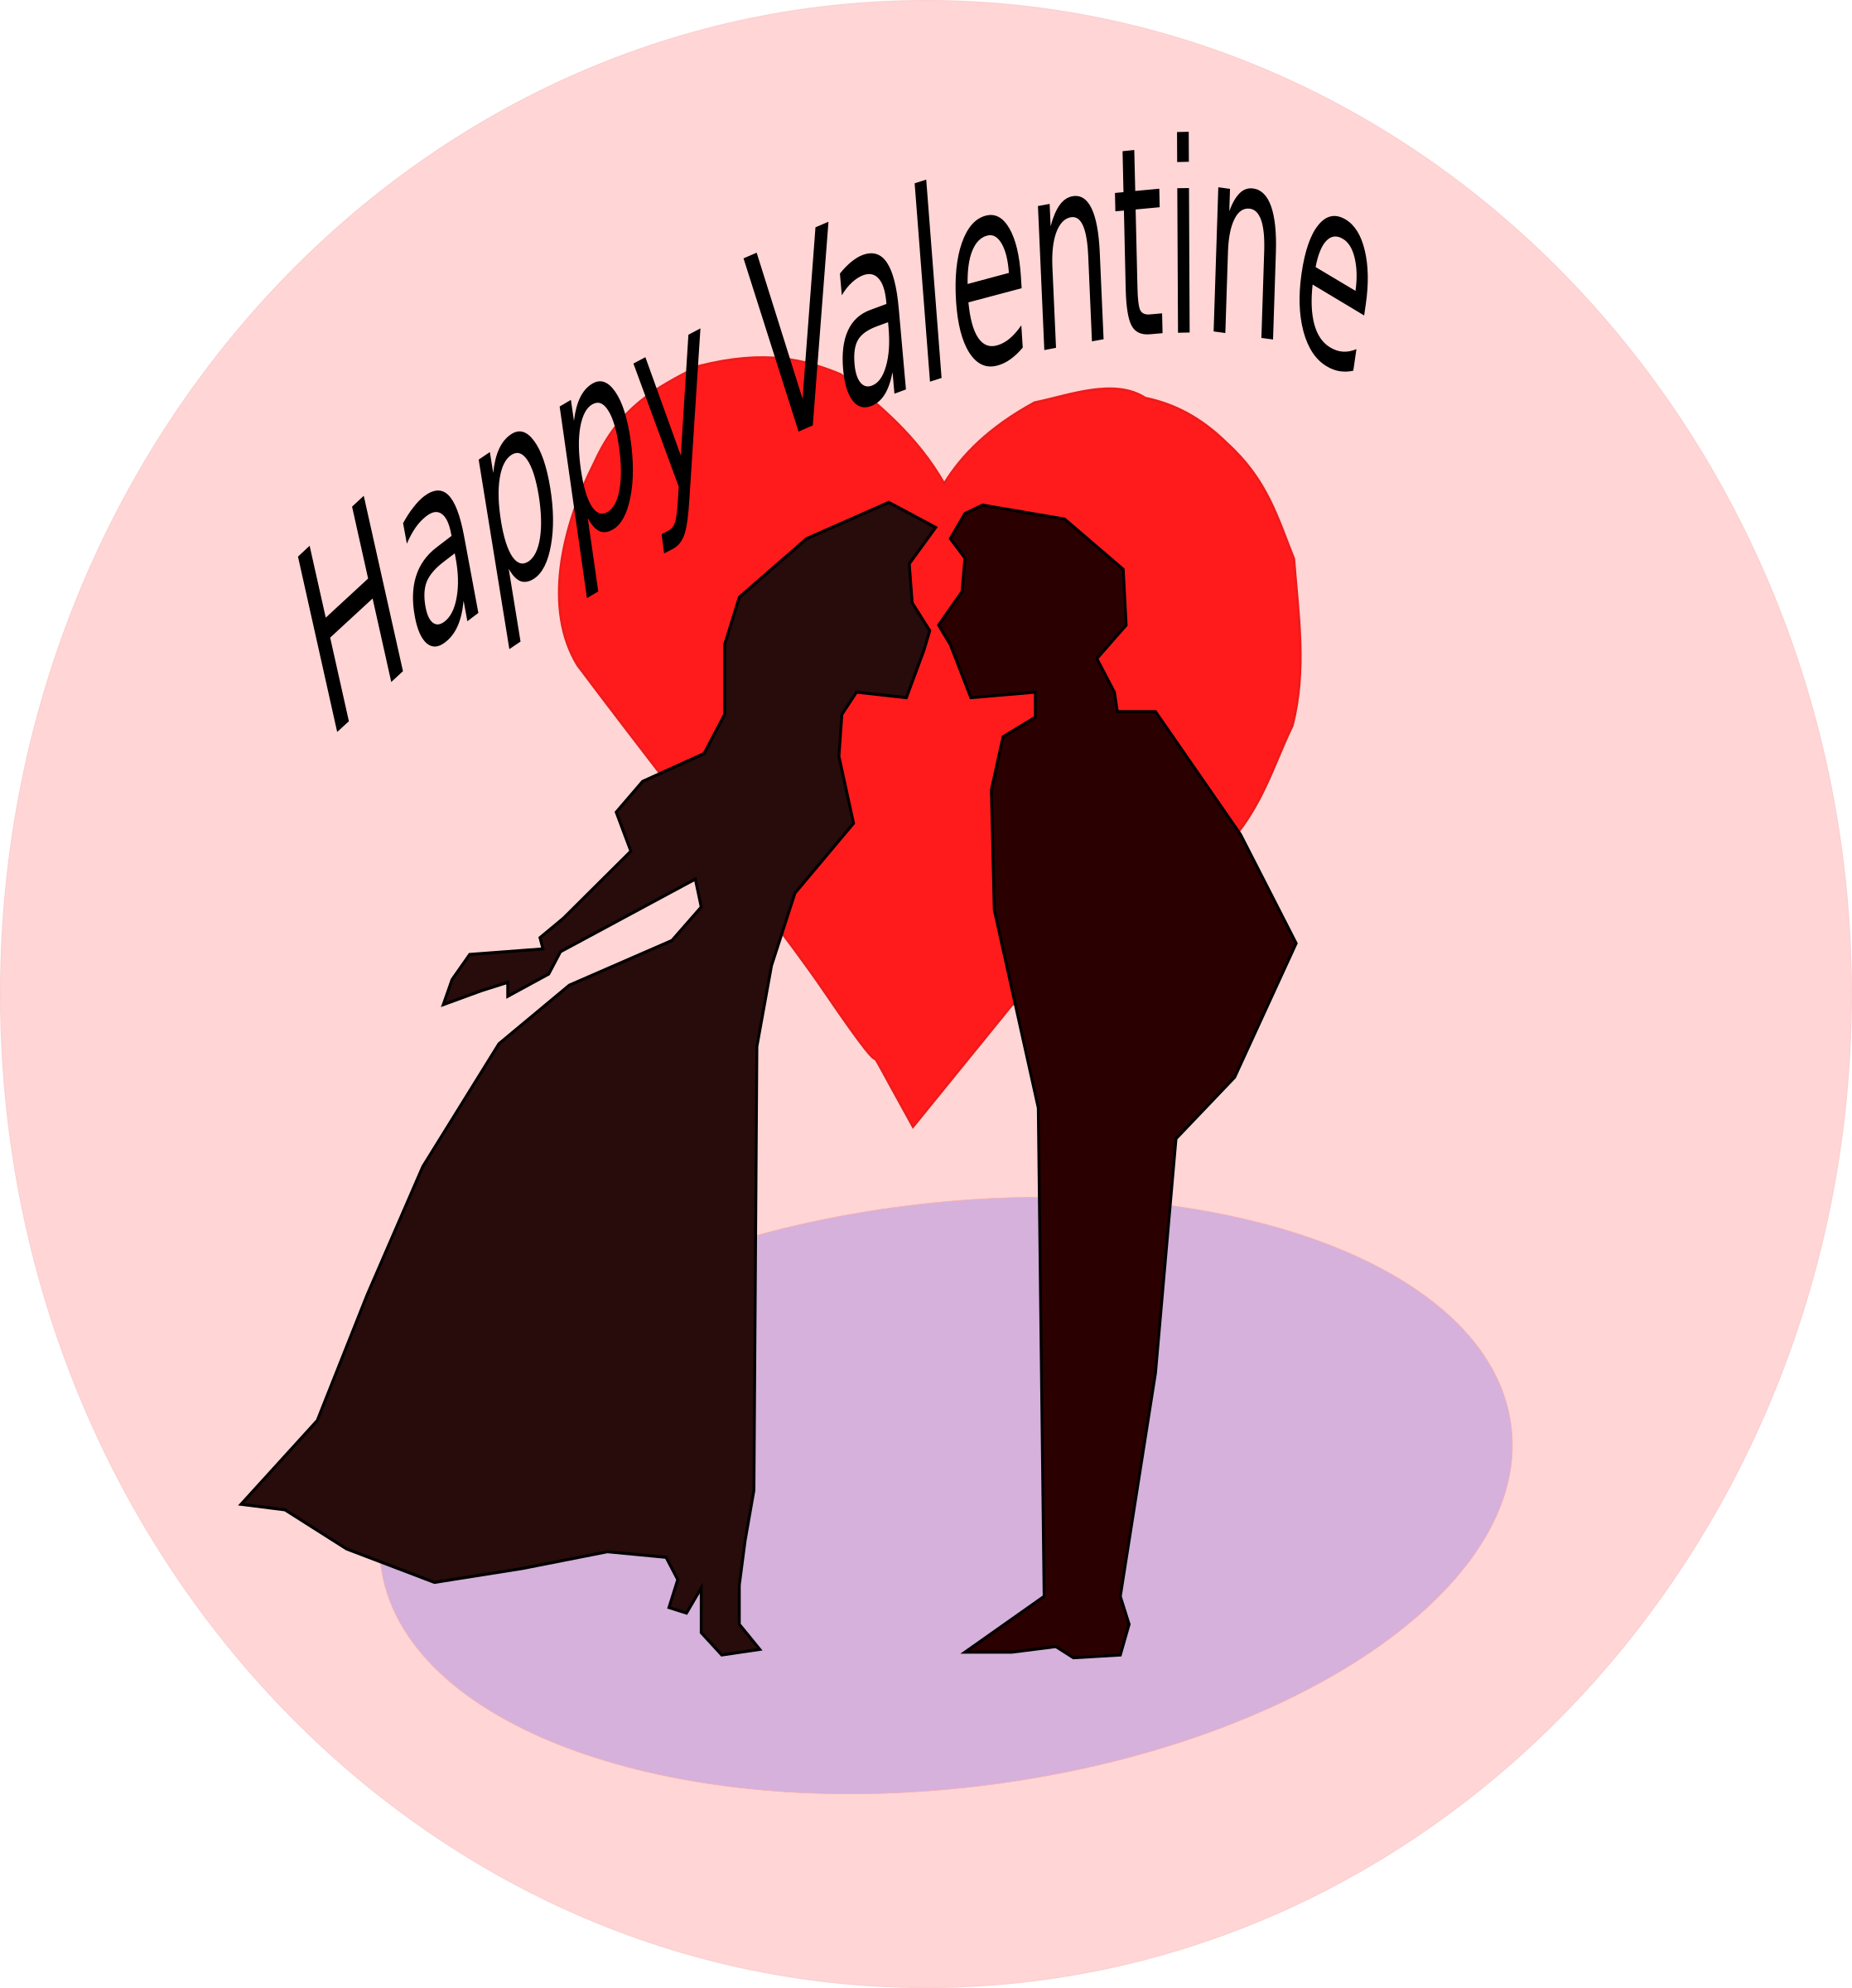 This free Icons Png design of Happy Valentine PlusPng.com  - Animated Valentines Day PNG